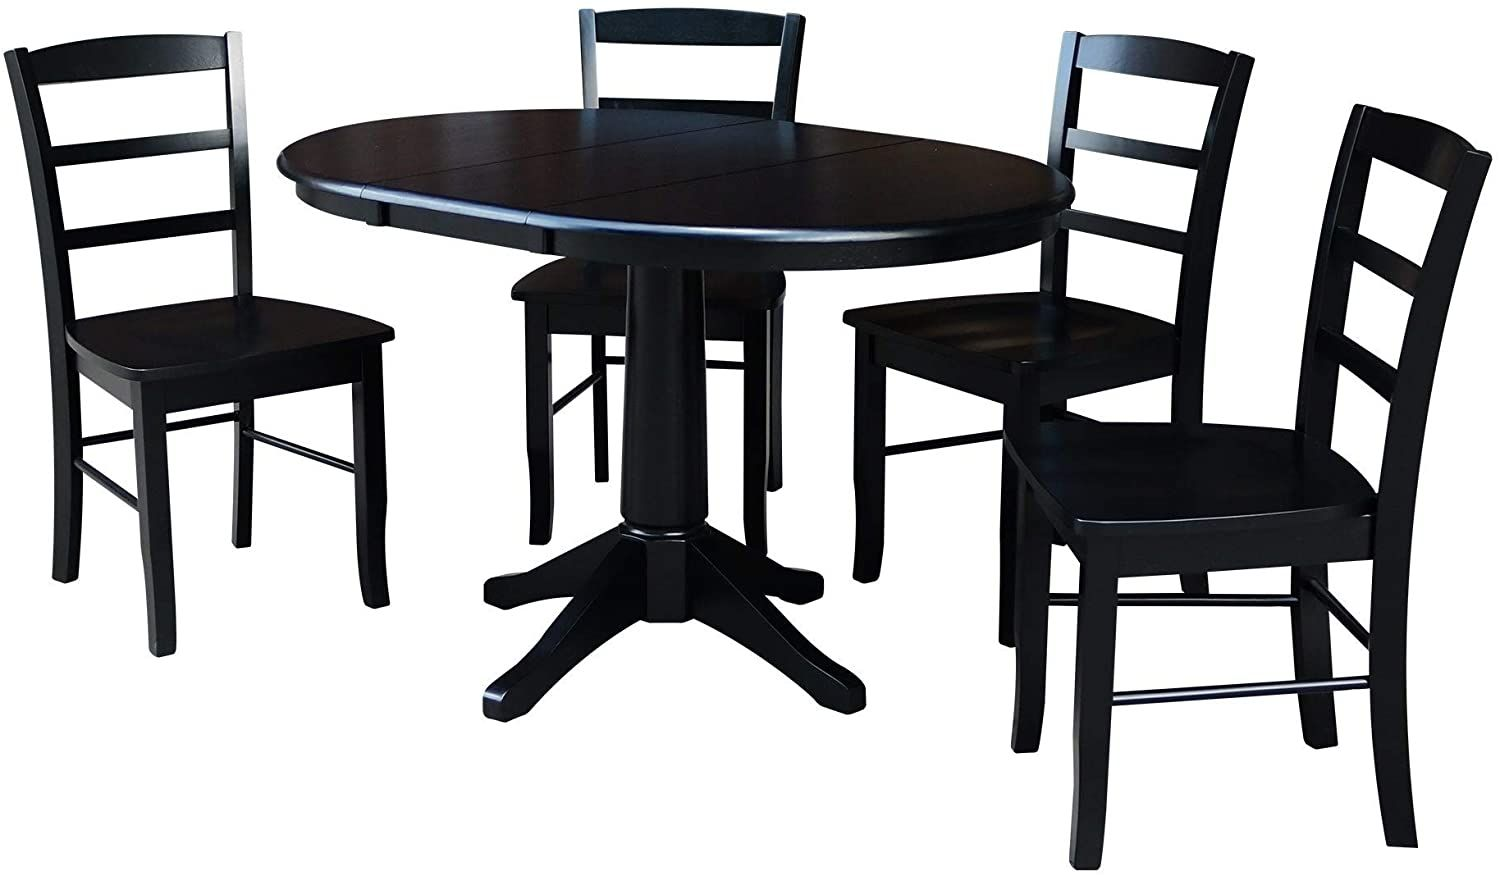 International Concepts 36 Round Extension Dining Table With 4 Madrid Chairs Black Home Kitchen In 2020 Extension Dining Table Luxury Dining Tables Dining Table